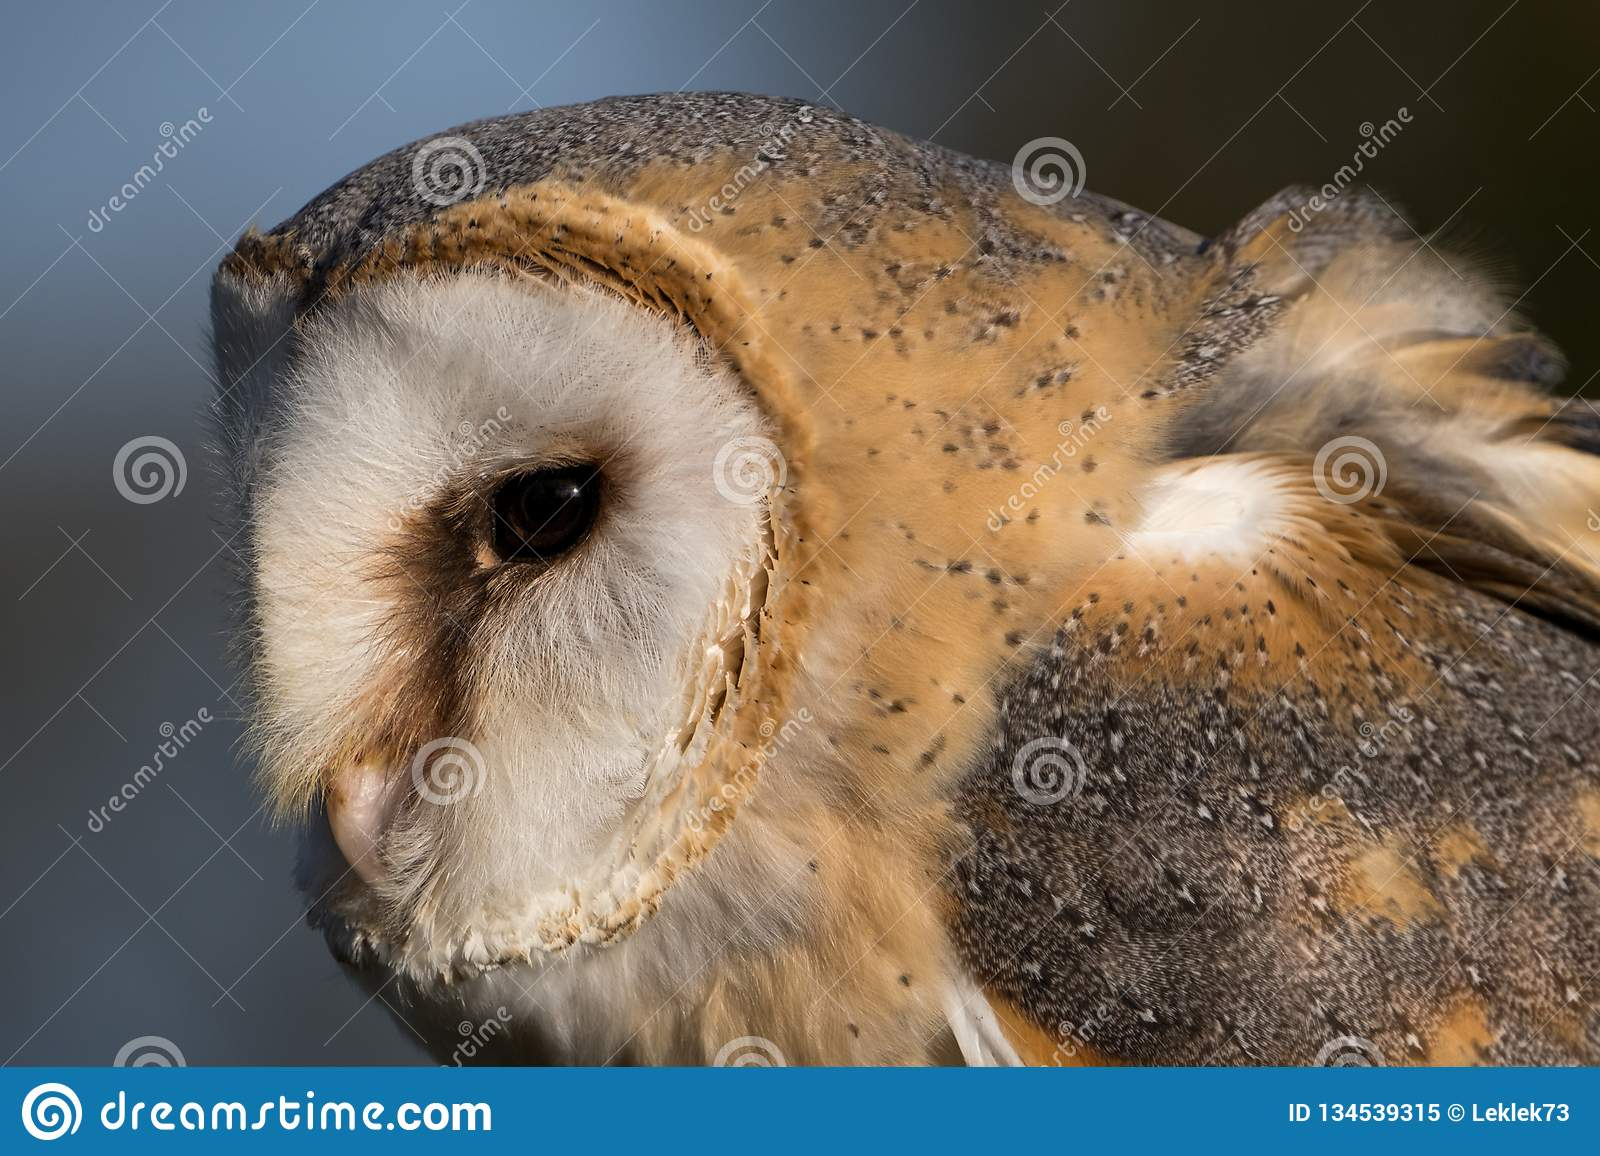 Close Up Of Barn Owl In Profile Showing Feathers, Beak And ...